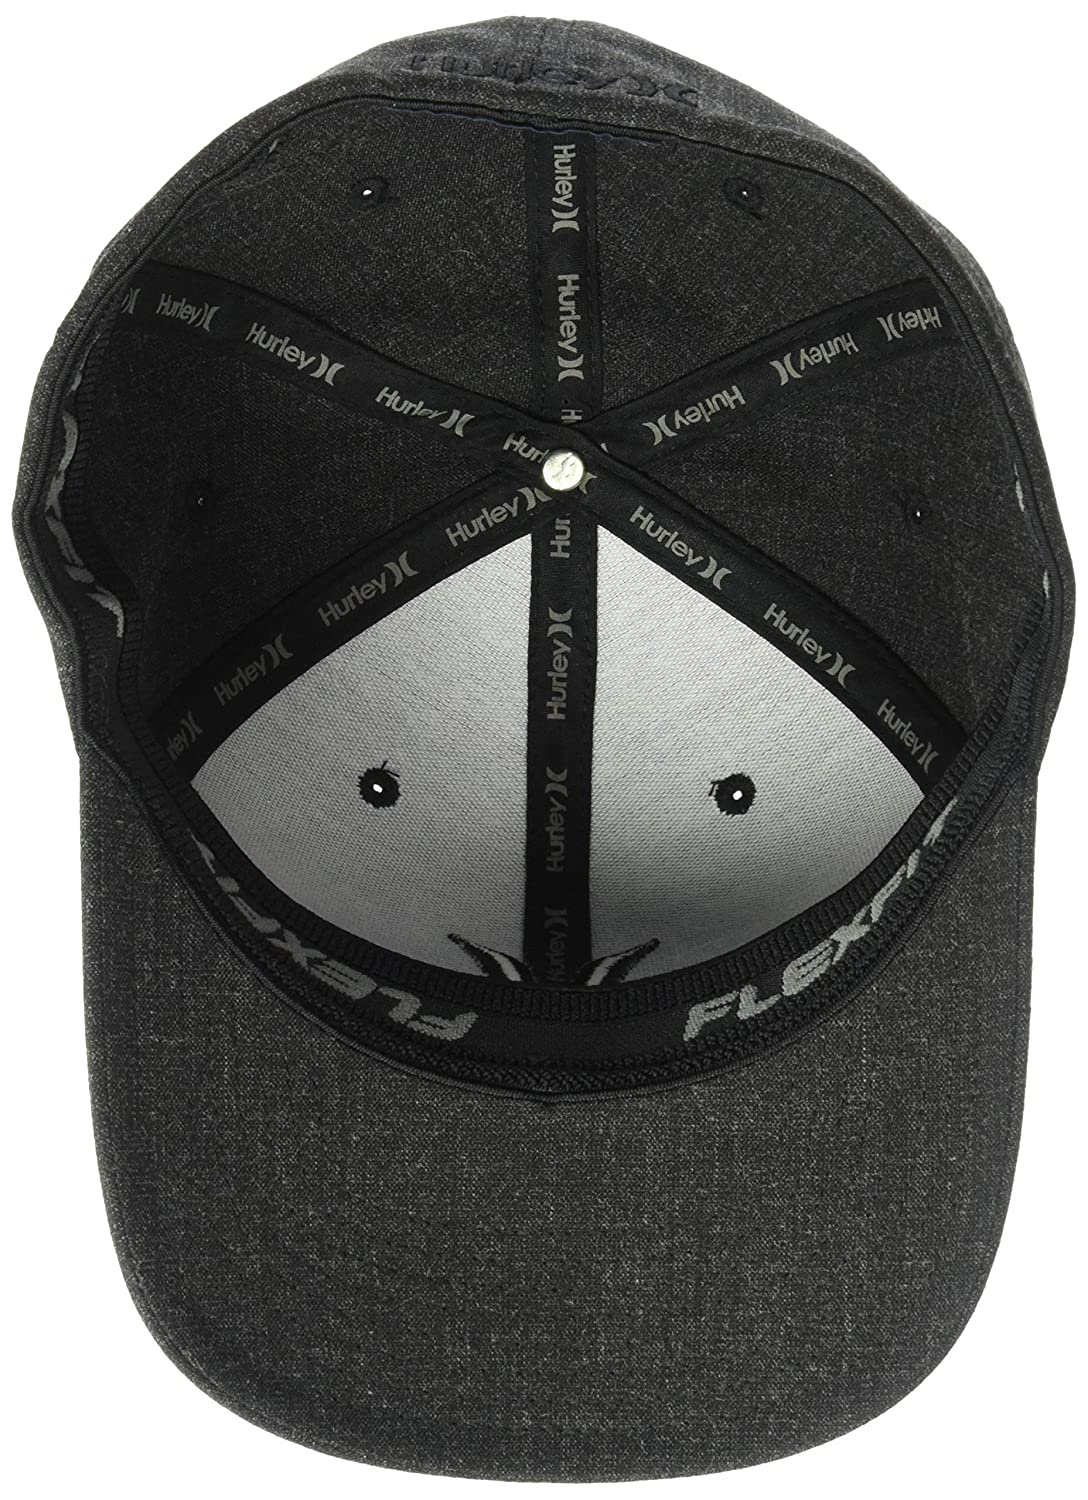 low priced dffaa 02a80 Amazon.com  Hurley Men s Black Textures Baseball Cap  Clothing